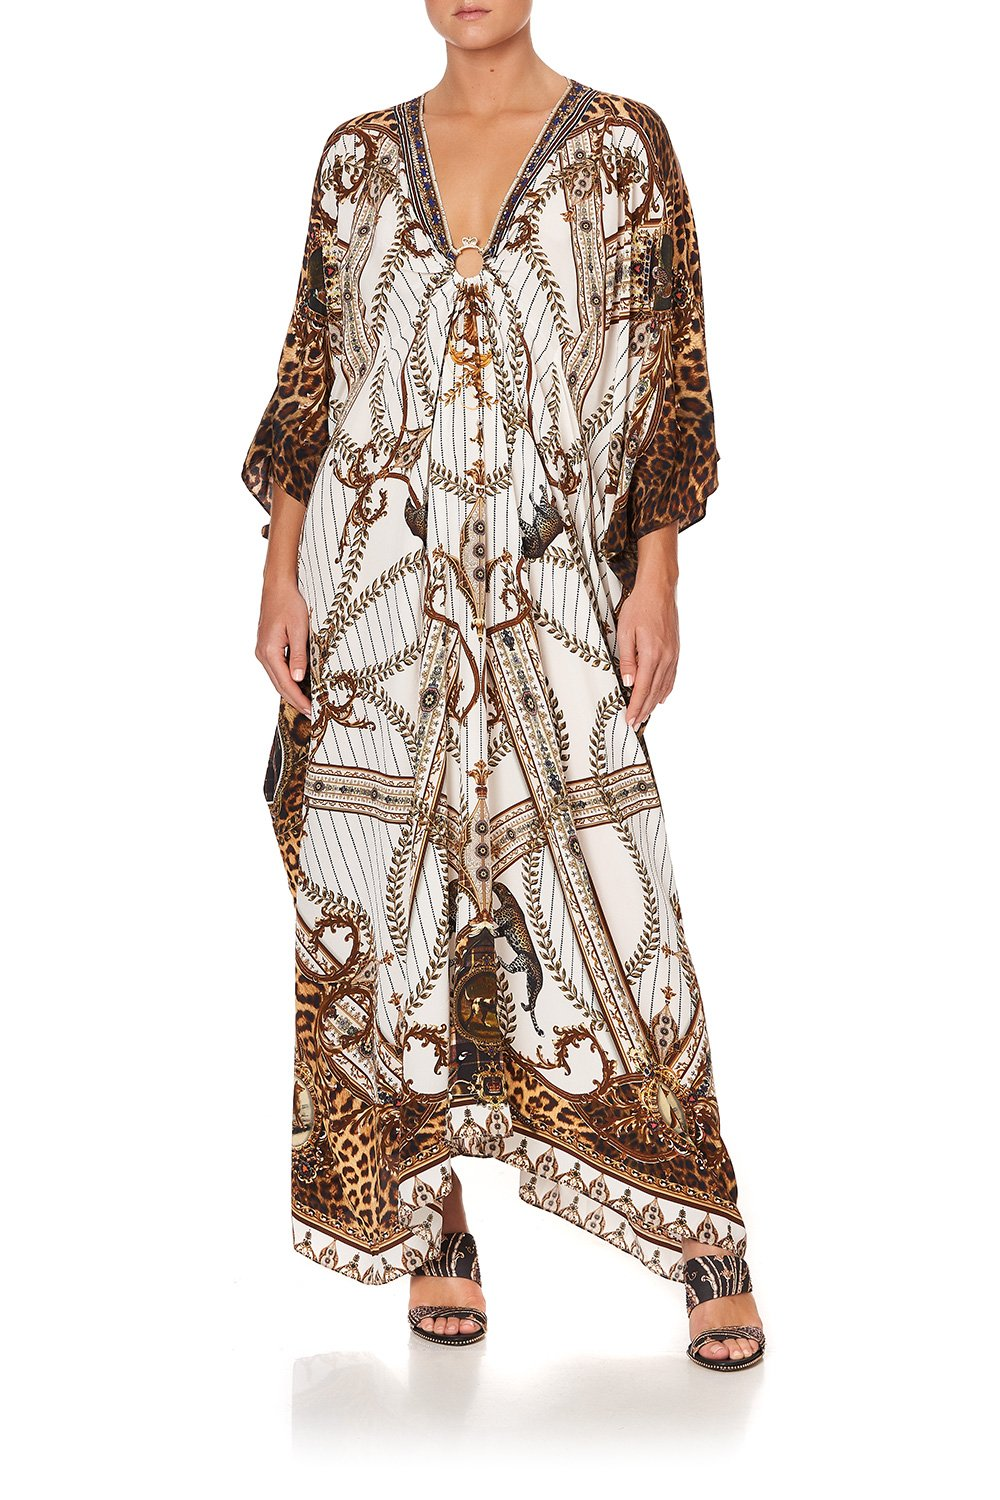 SPLIT SLEEVE KAFTAN WITH HARDWARE MIND YOUR MANOR